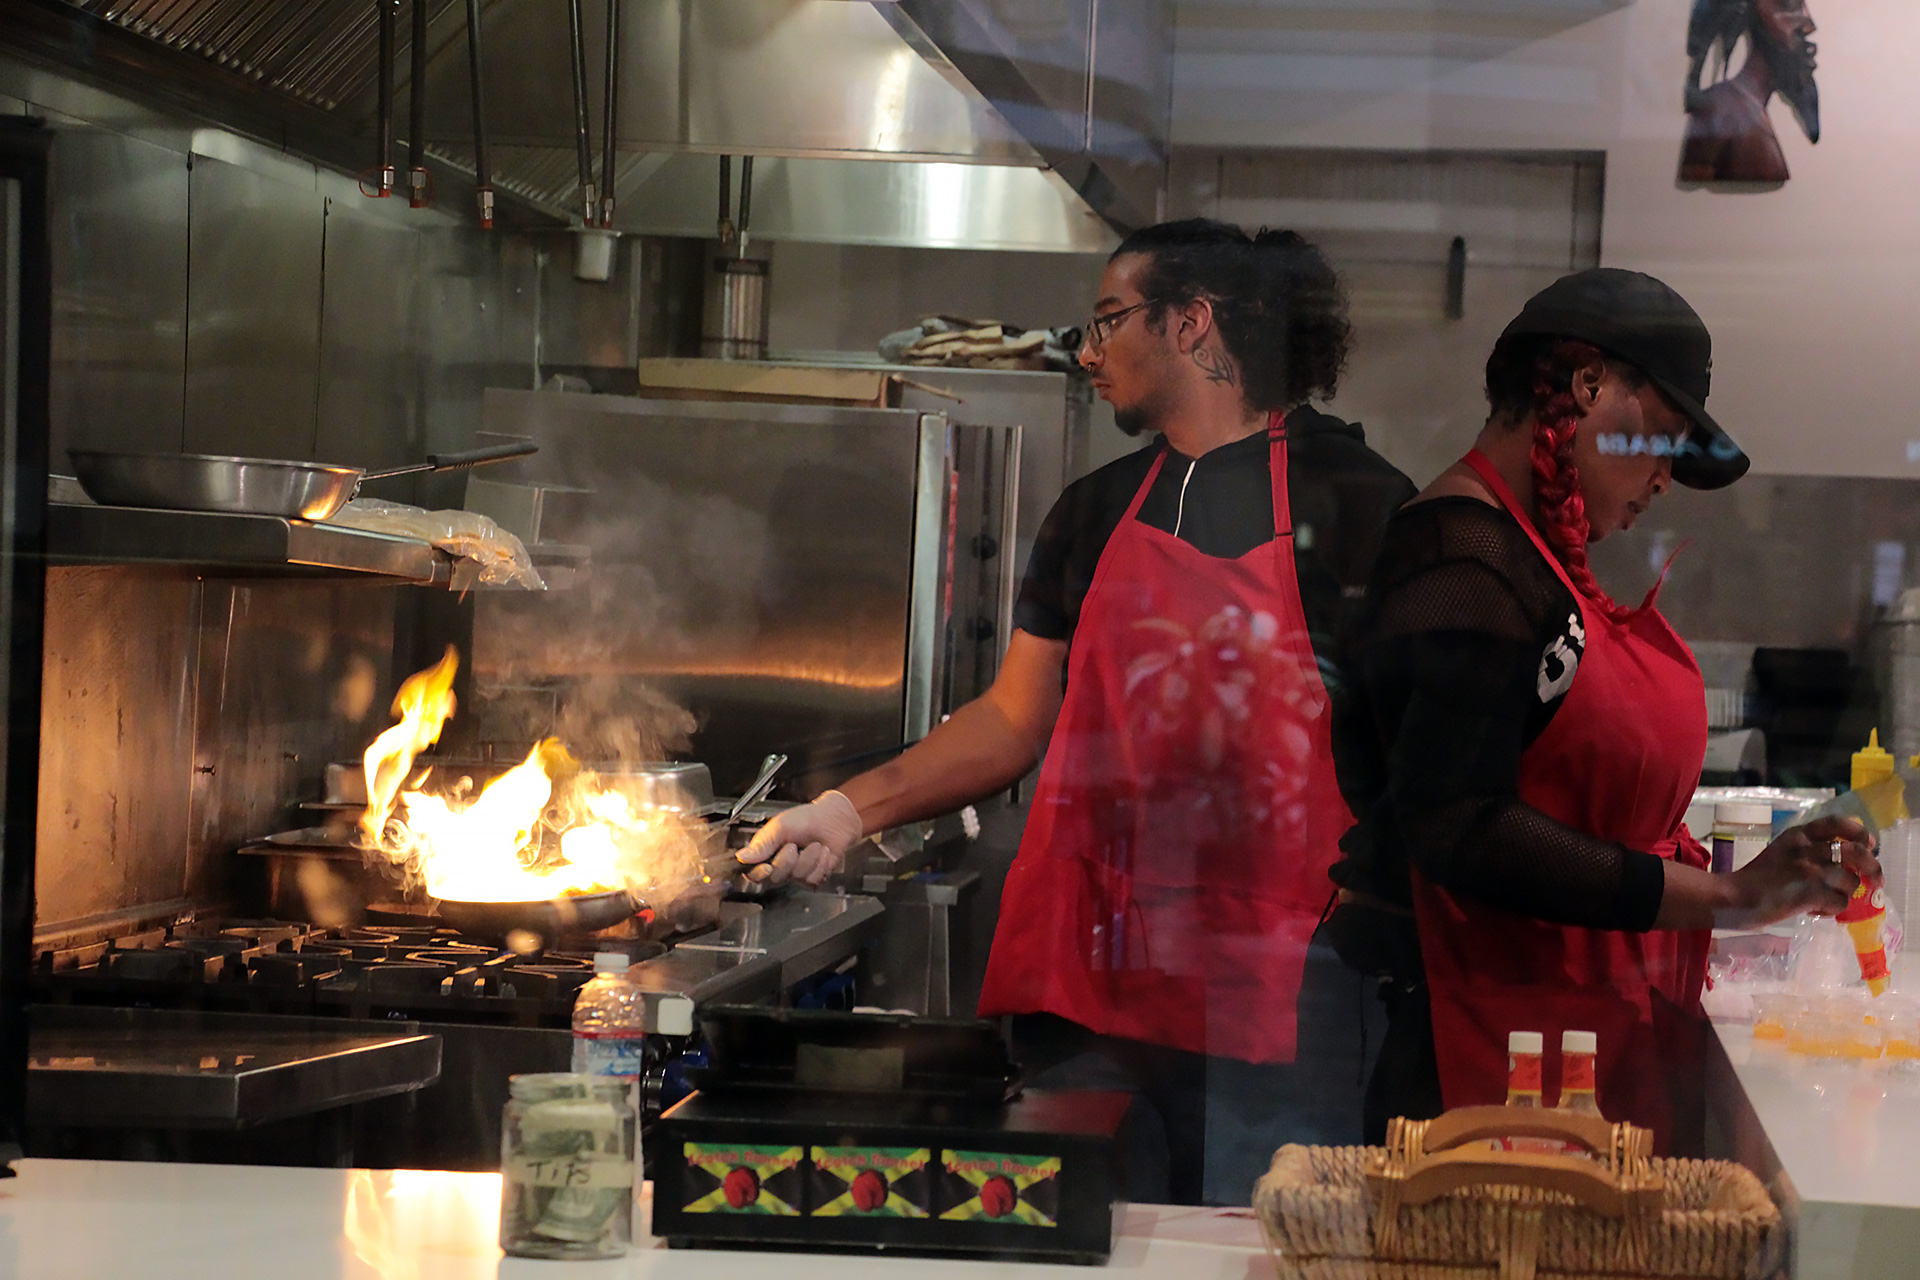 Staff preparing food at Scotch Bonnet.